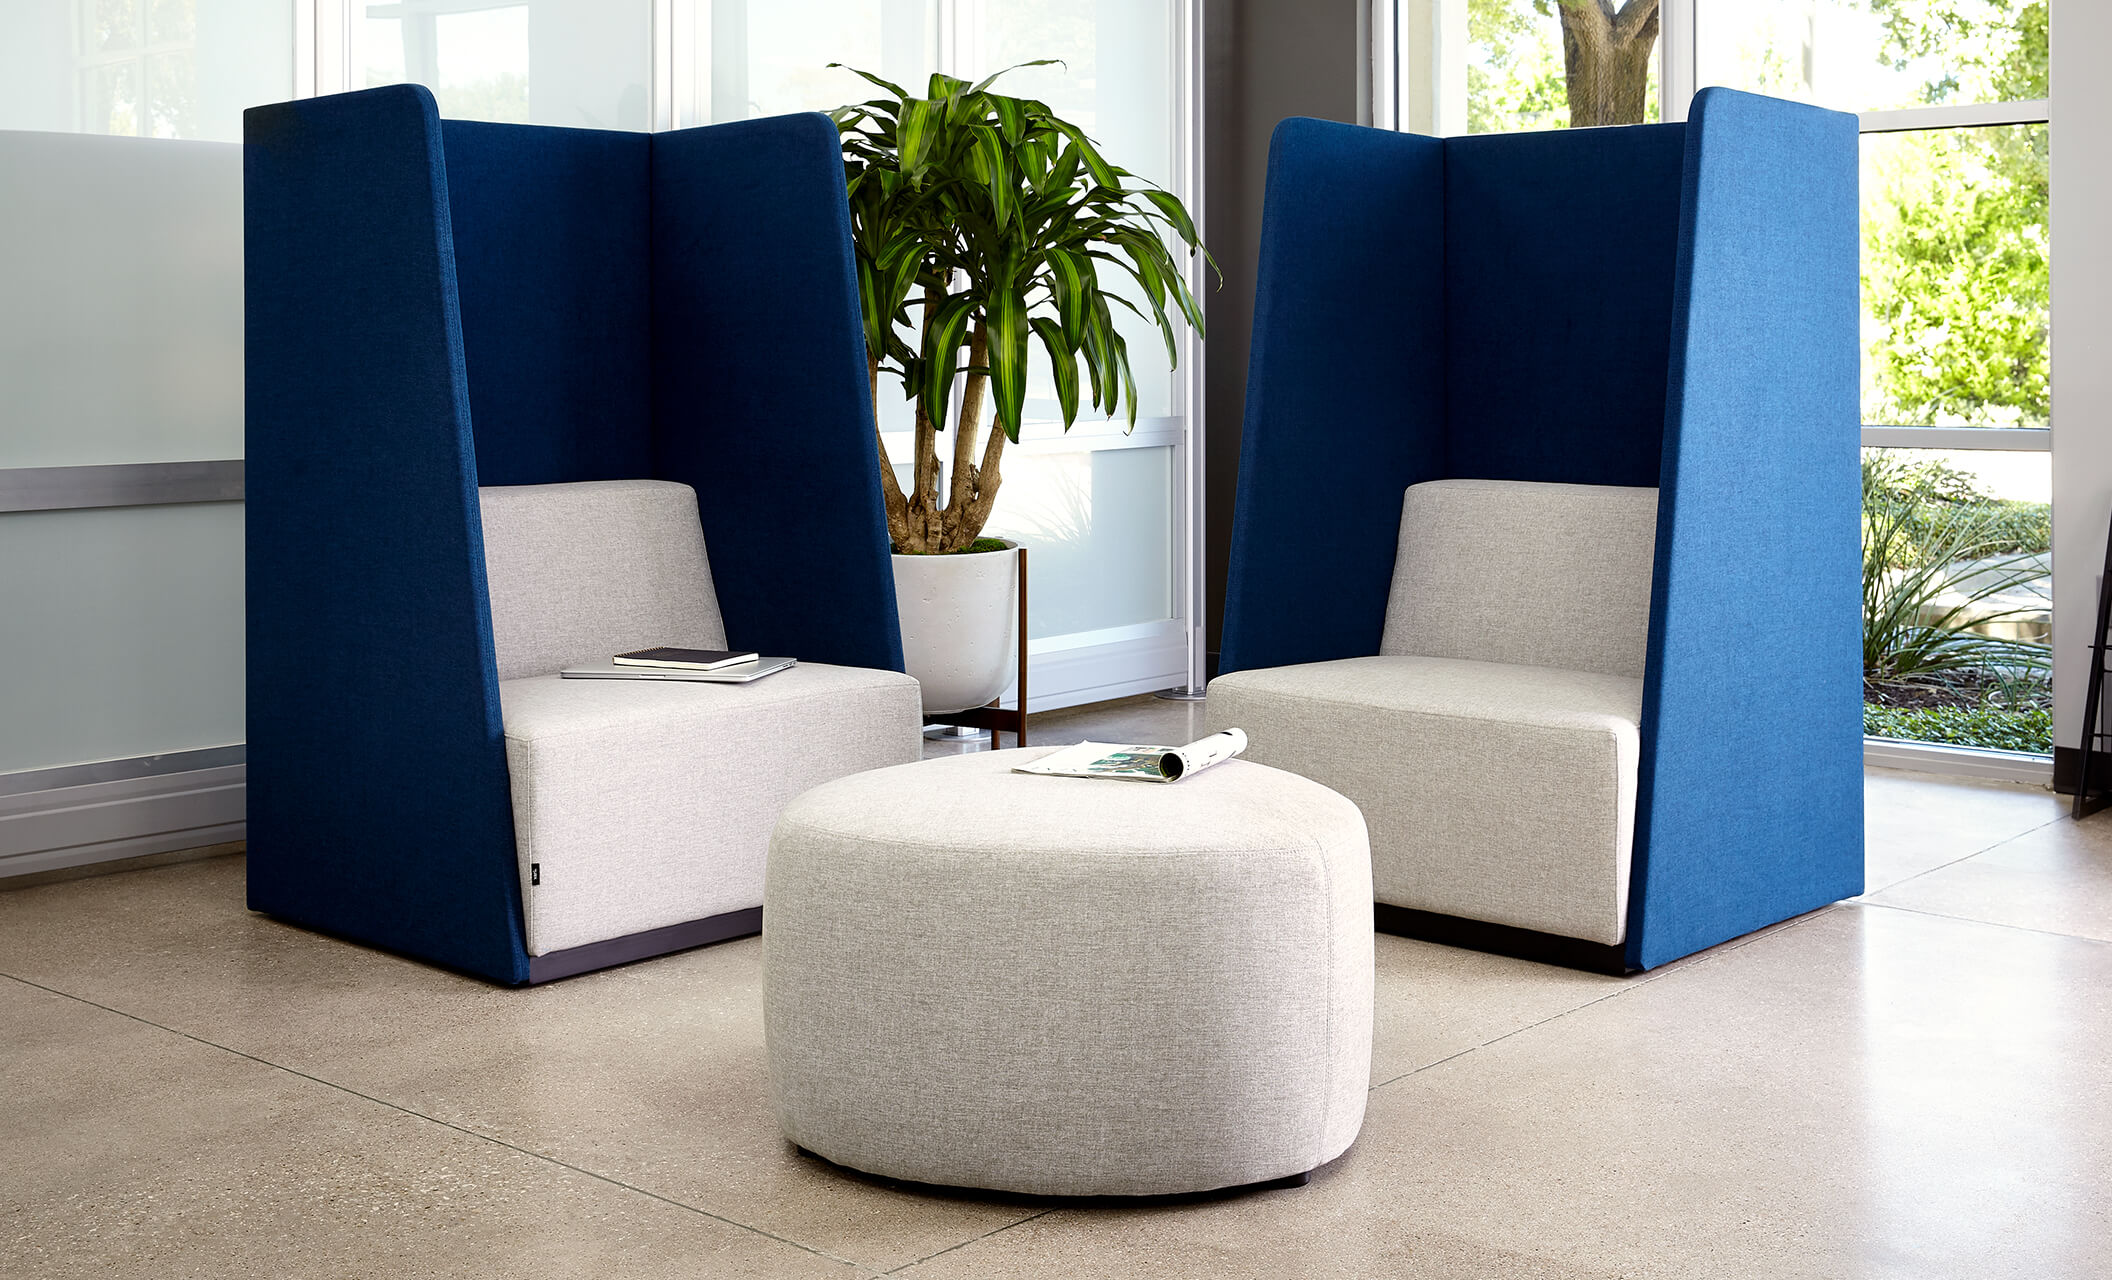 two high back chairs appear with a small ottoman in an office environment